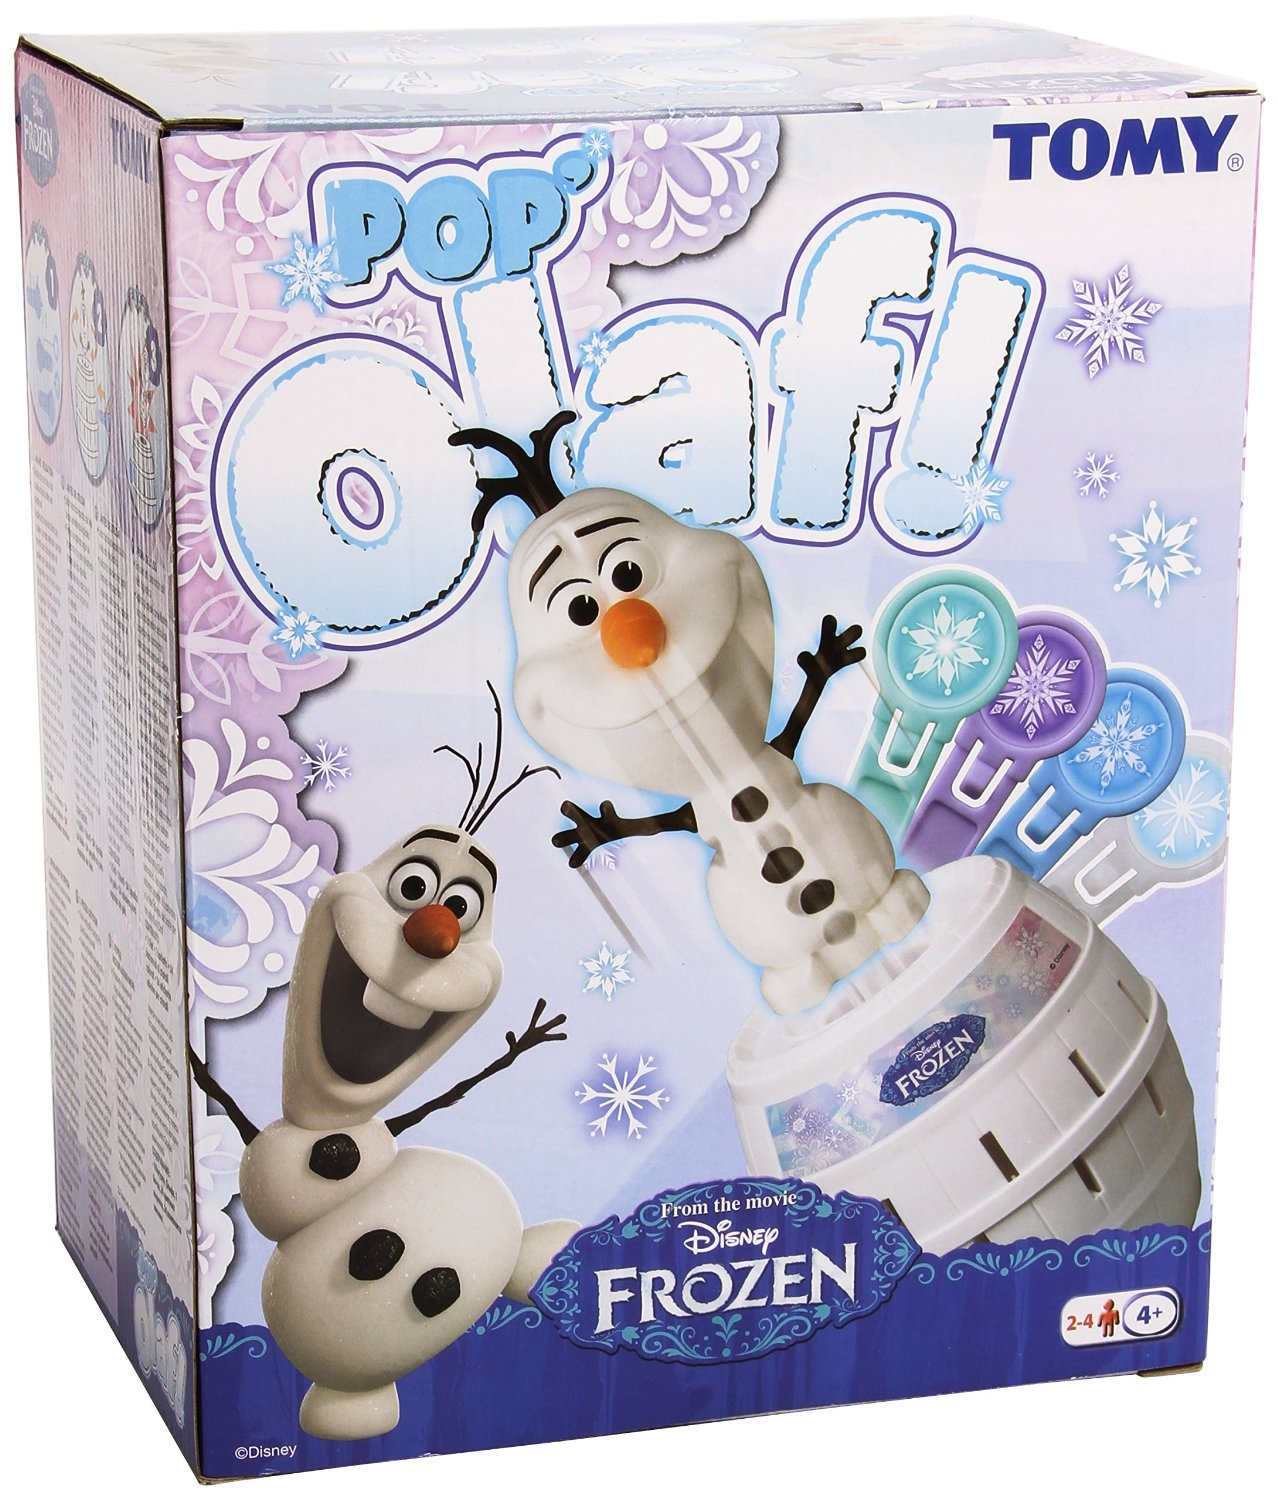 Frozen: Olaf Pop Up